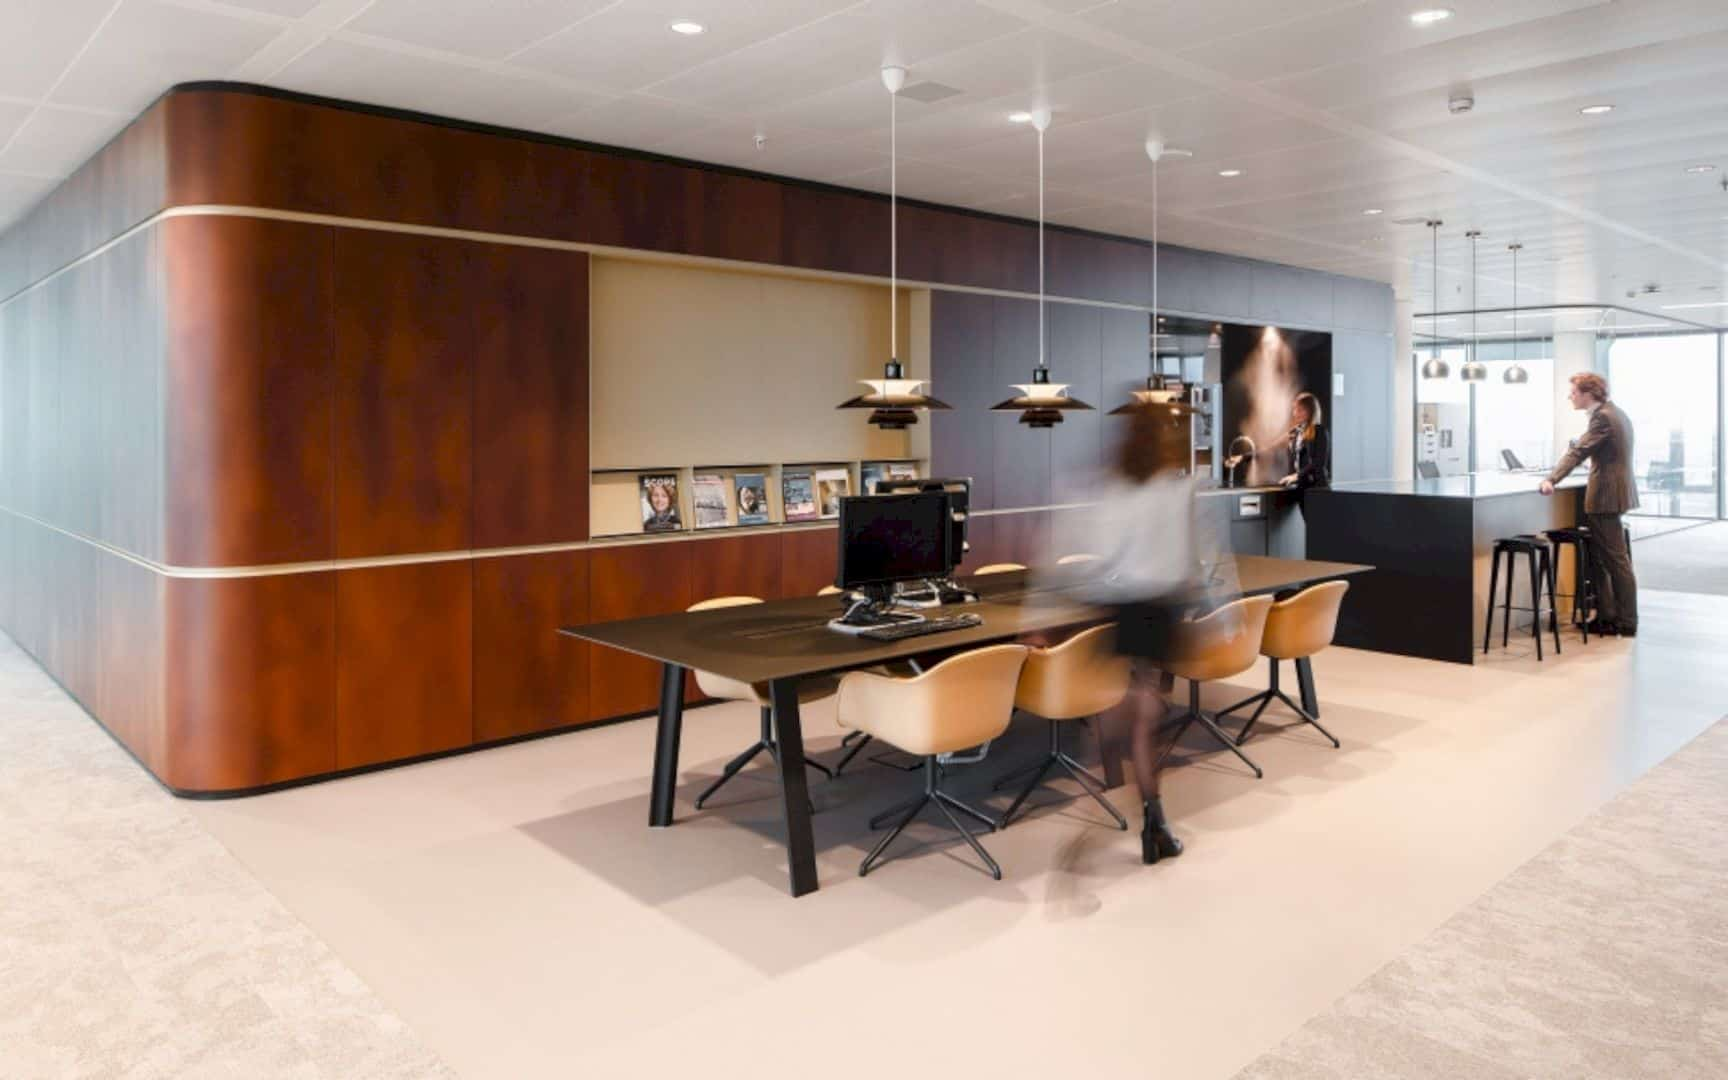 Cms Amsterdam A Warm Natural Base Office Design Merged With Curves And Transparency 6